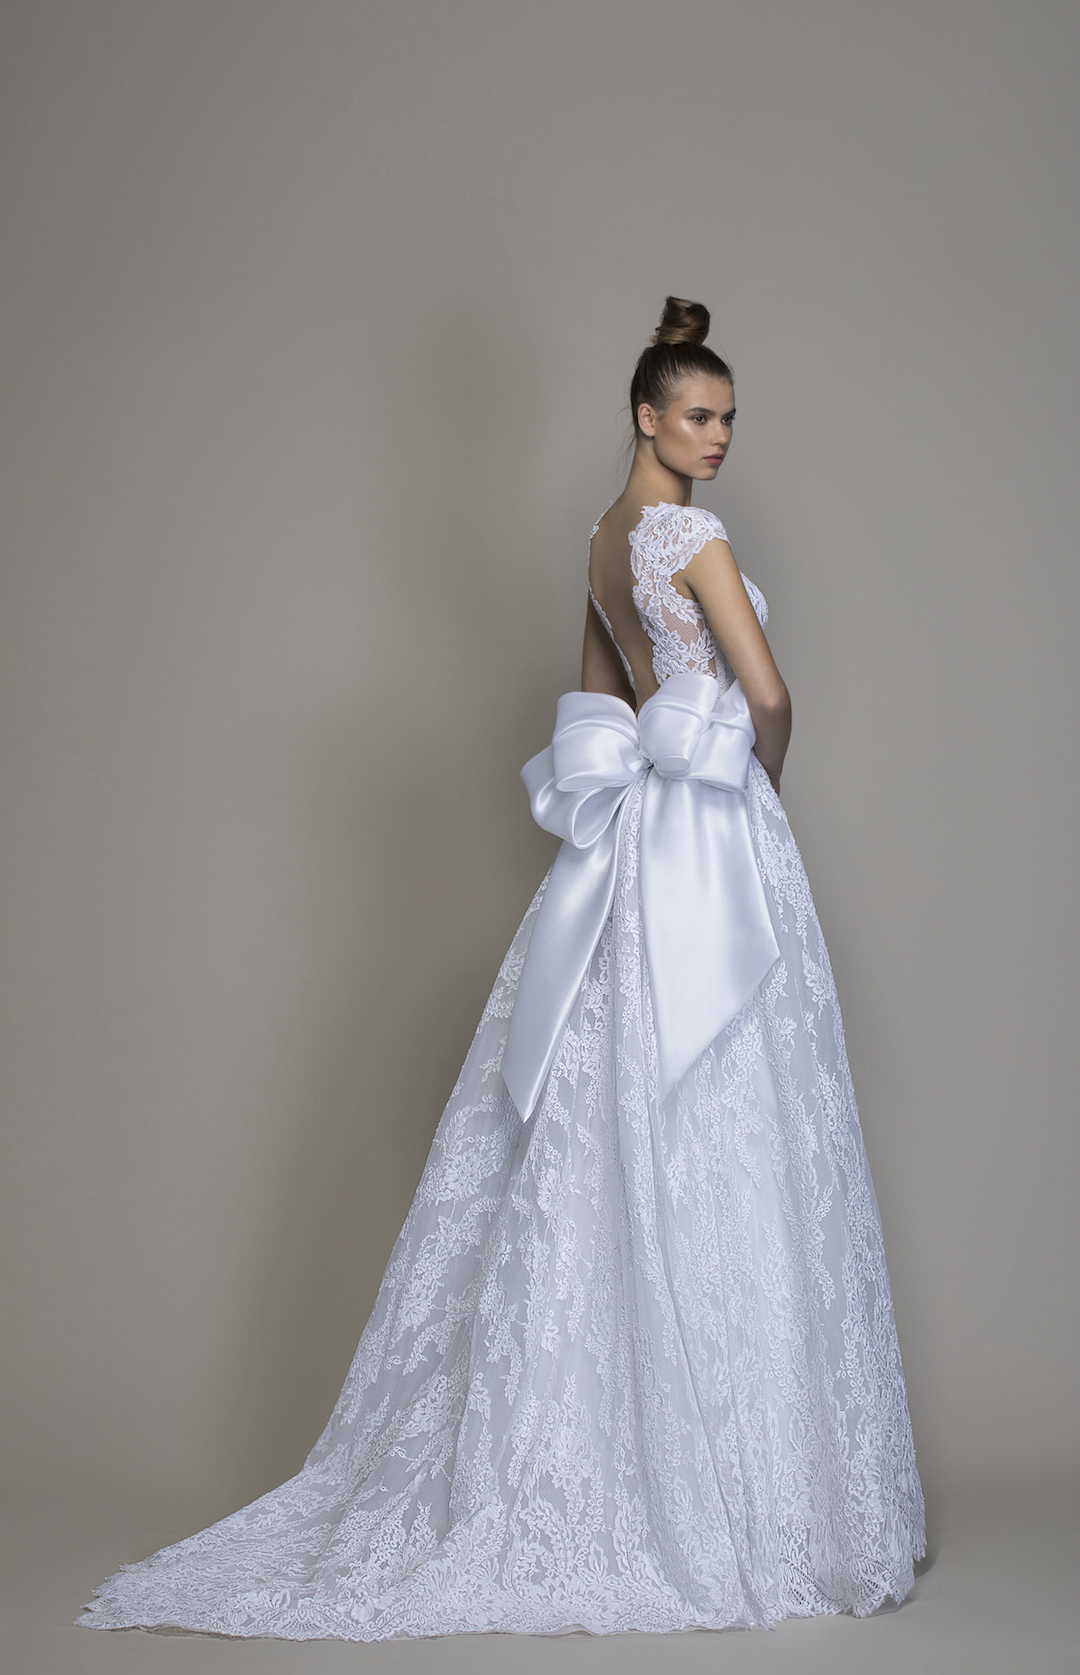 Pnina Tornai's new LOVE 2020 Collection is out! This is style 14769